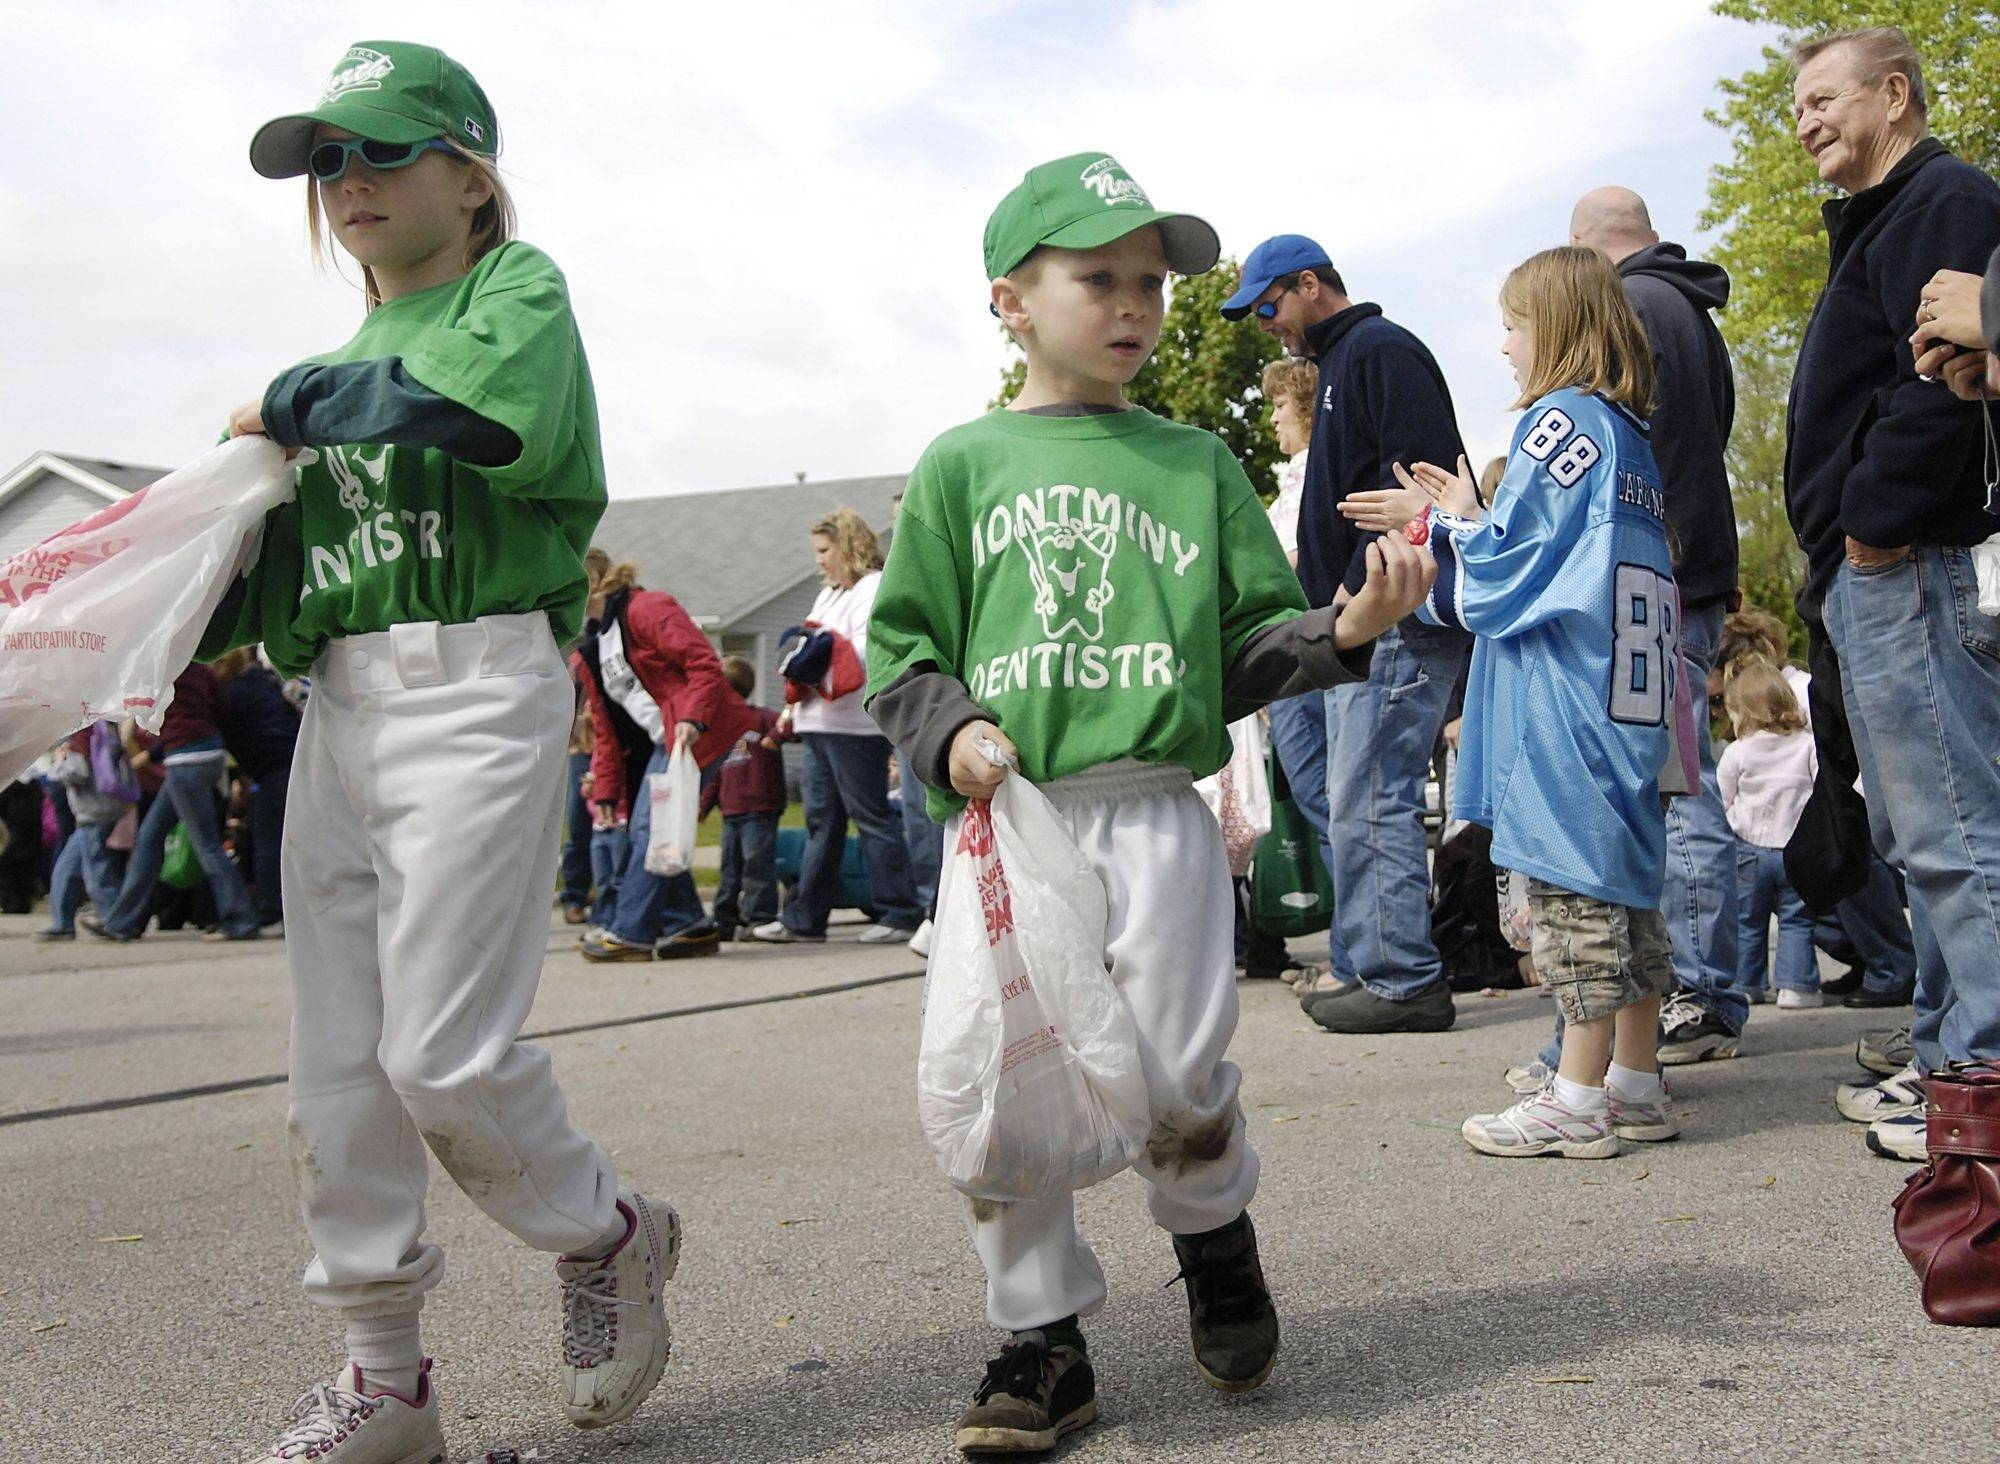 Shannon Lopresti, 9, and brother Tony, 7, of the Montminy Dentistry baseball team hand out candy individually to people along the parade route for the North Aurora Mother's Club and North Aurora Baseball Association last year.